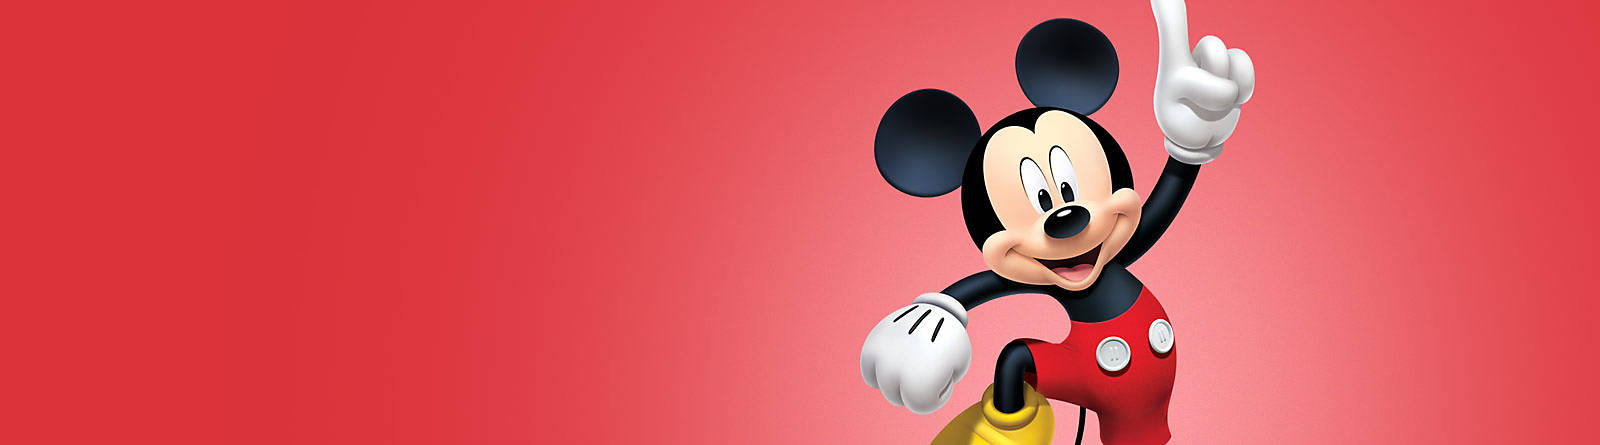 Mickey Mouse Oh boy!  Discover our range of Mickey Mouse toys, collectibles, mugs, homeware and more